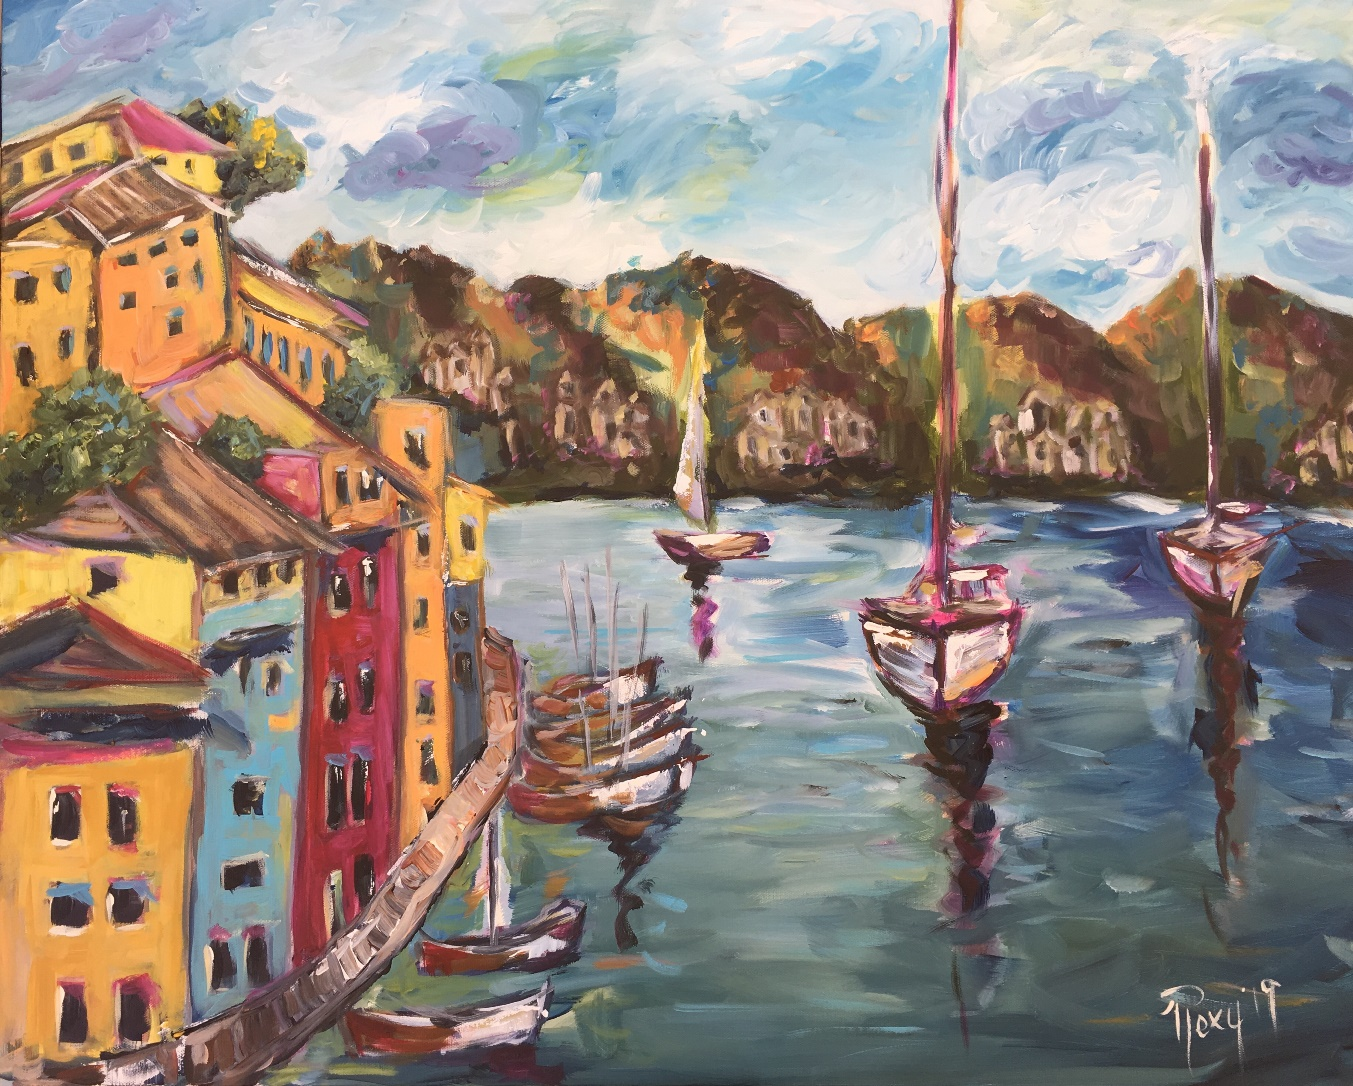 Romantic Impressionism in the Art of Roxy Rich